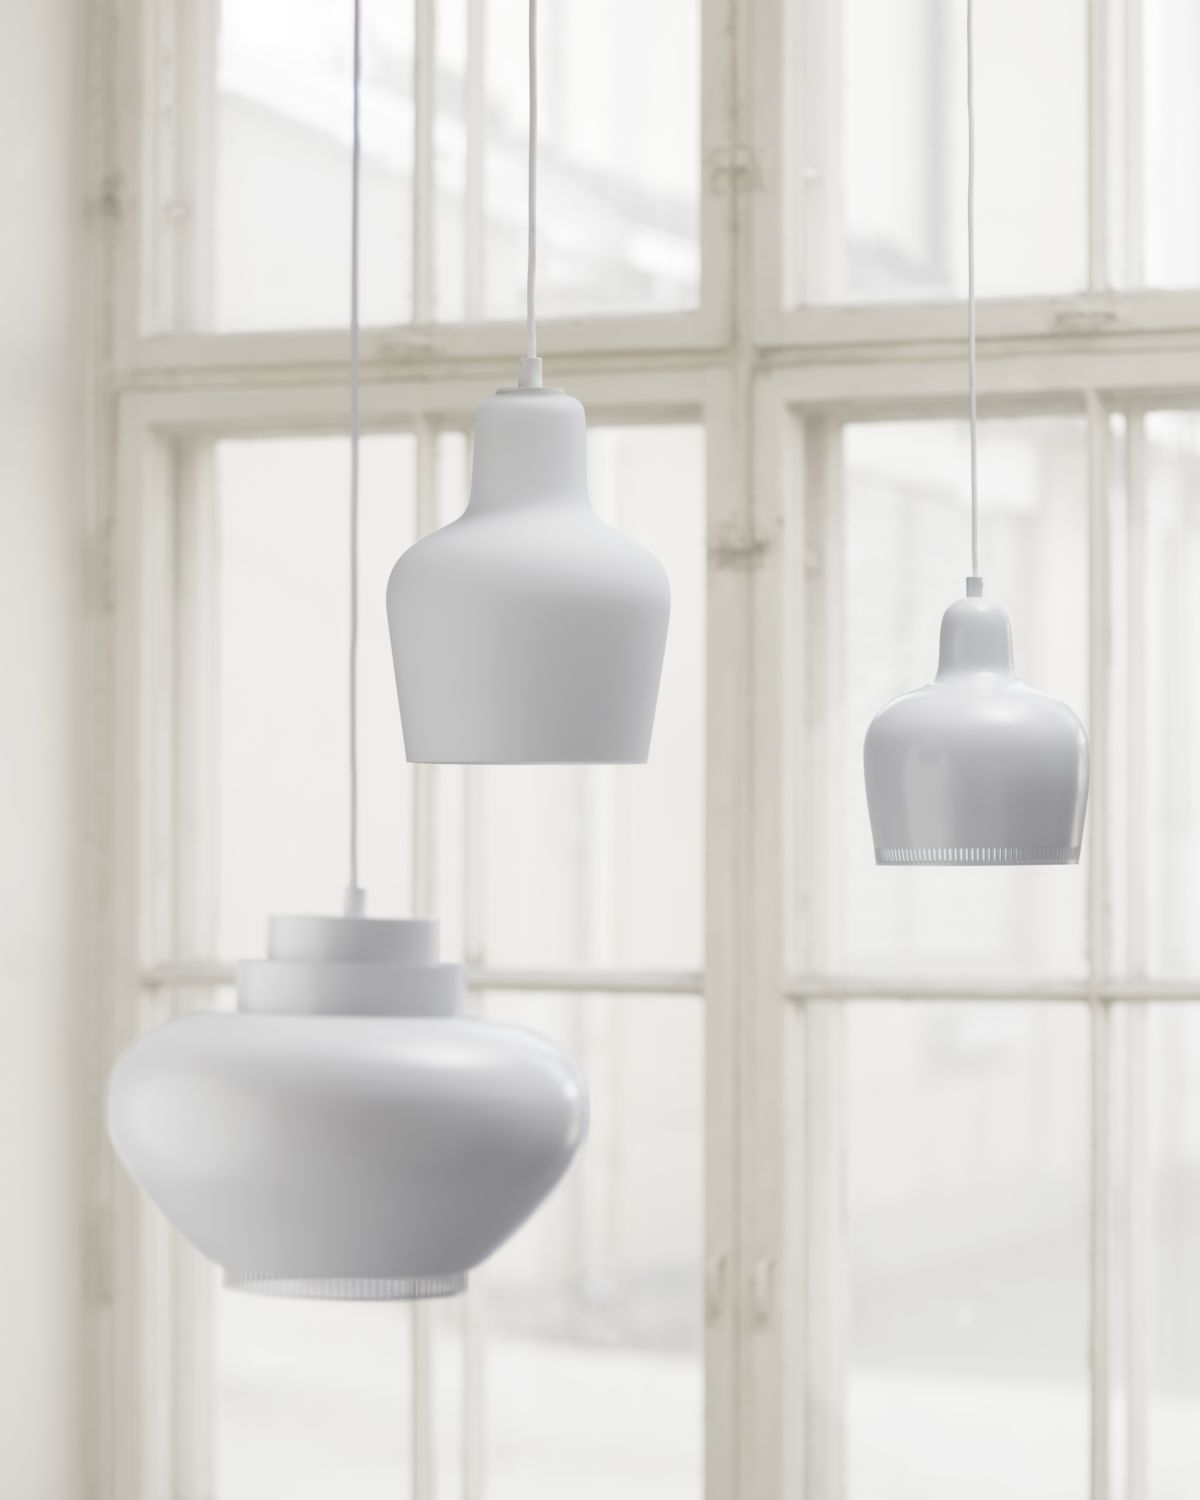 Pendant-Lights-A333-A330S-A440